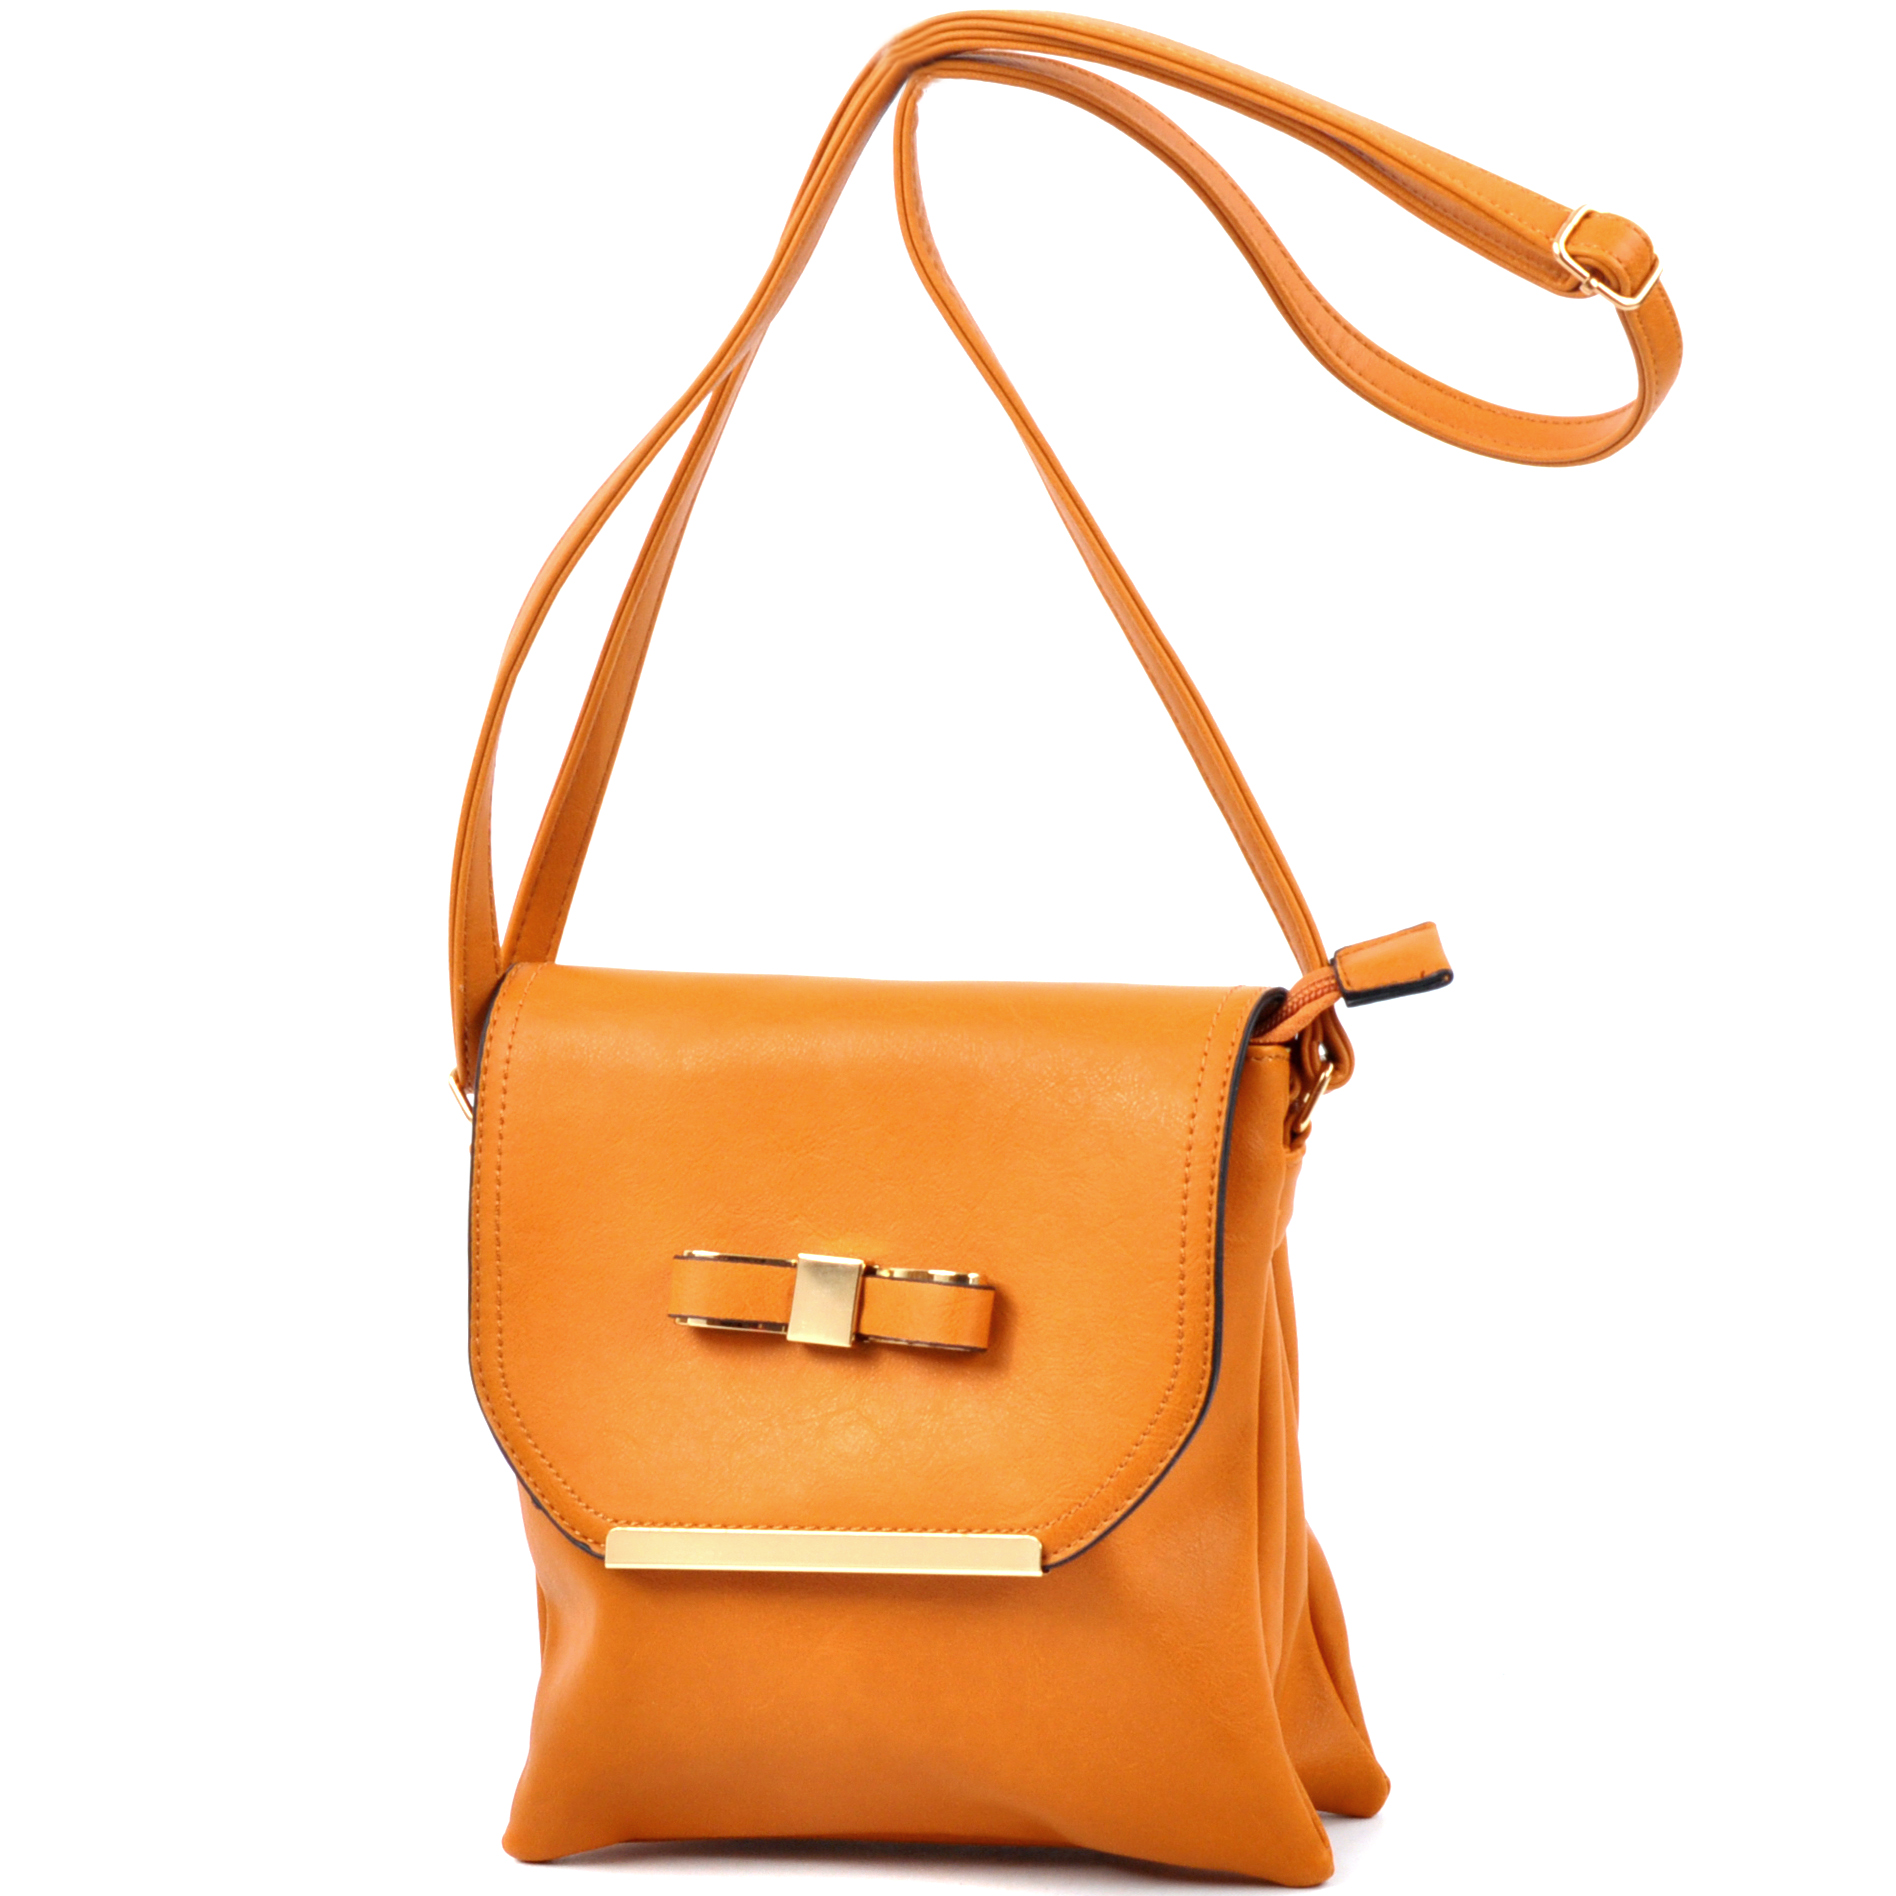 Gold-Tone Bow Messenger Bag